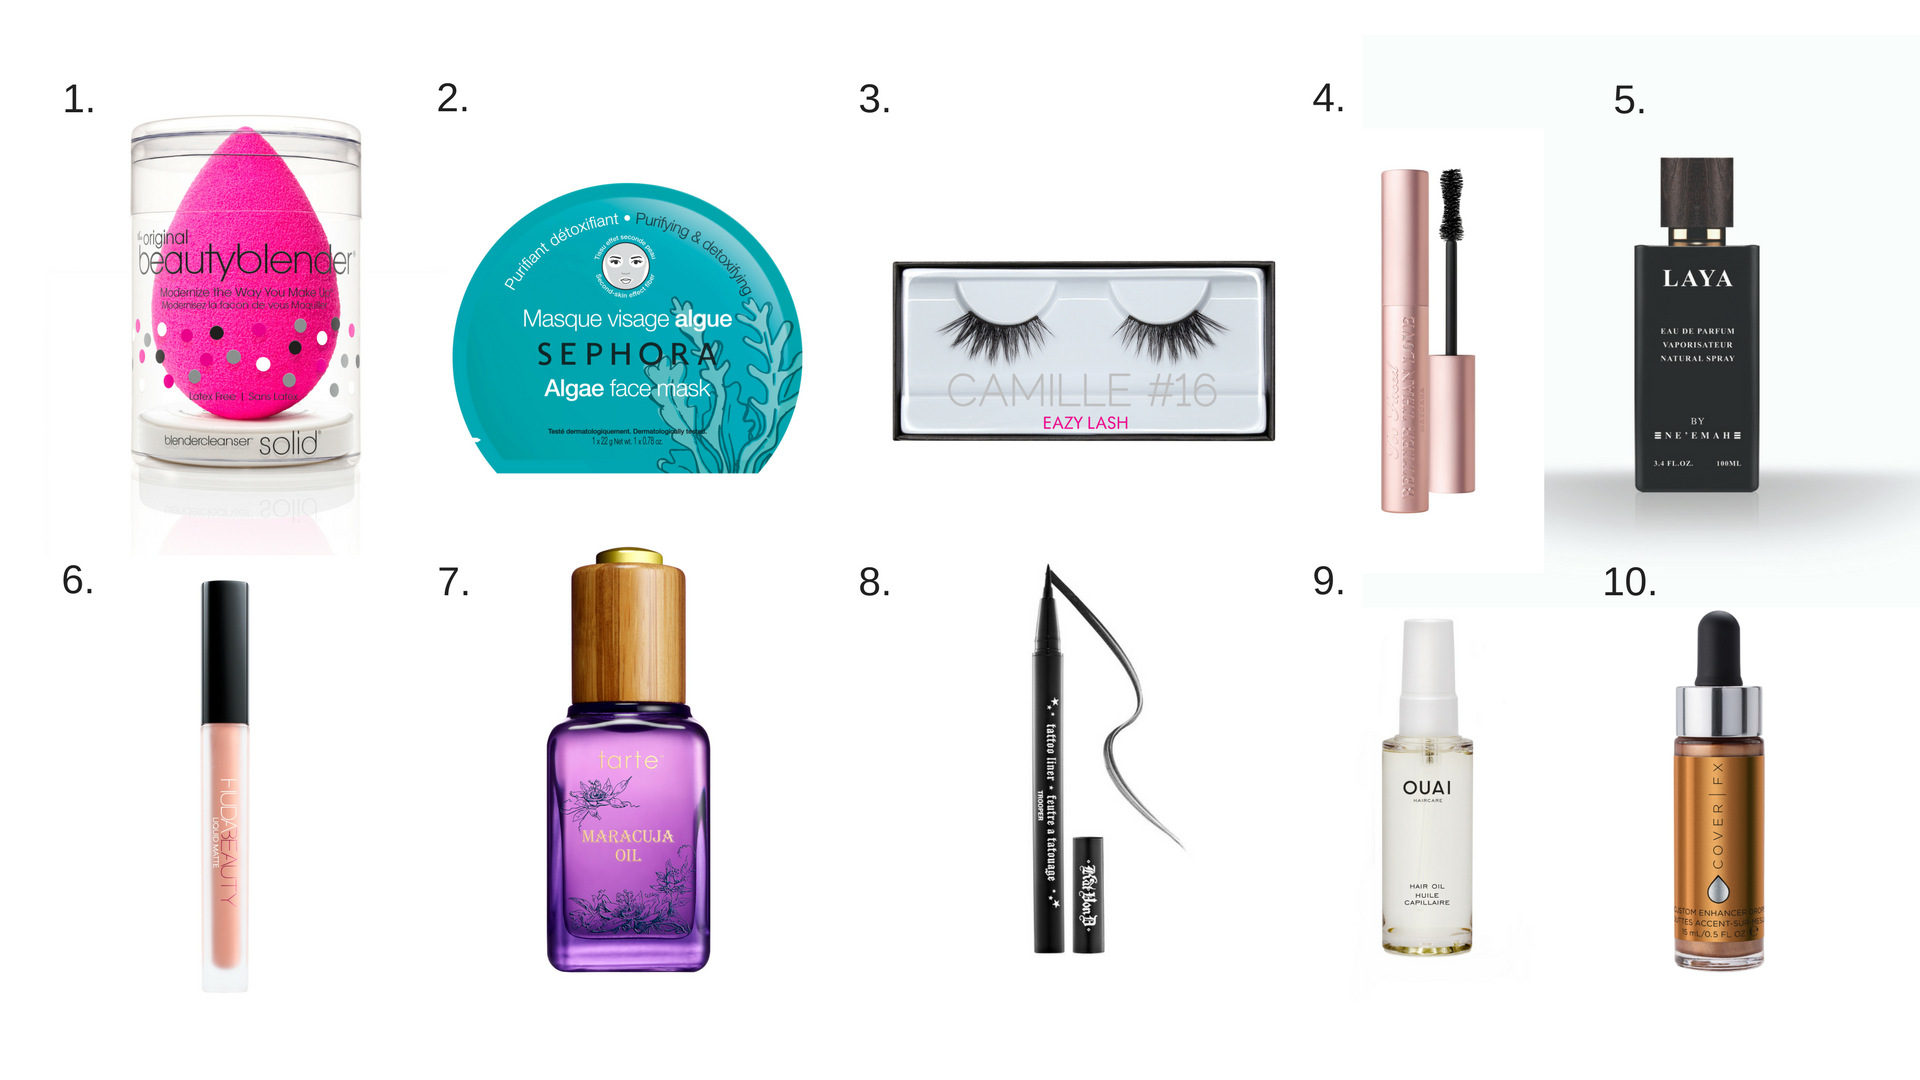 Sephora's highest selling products